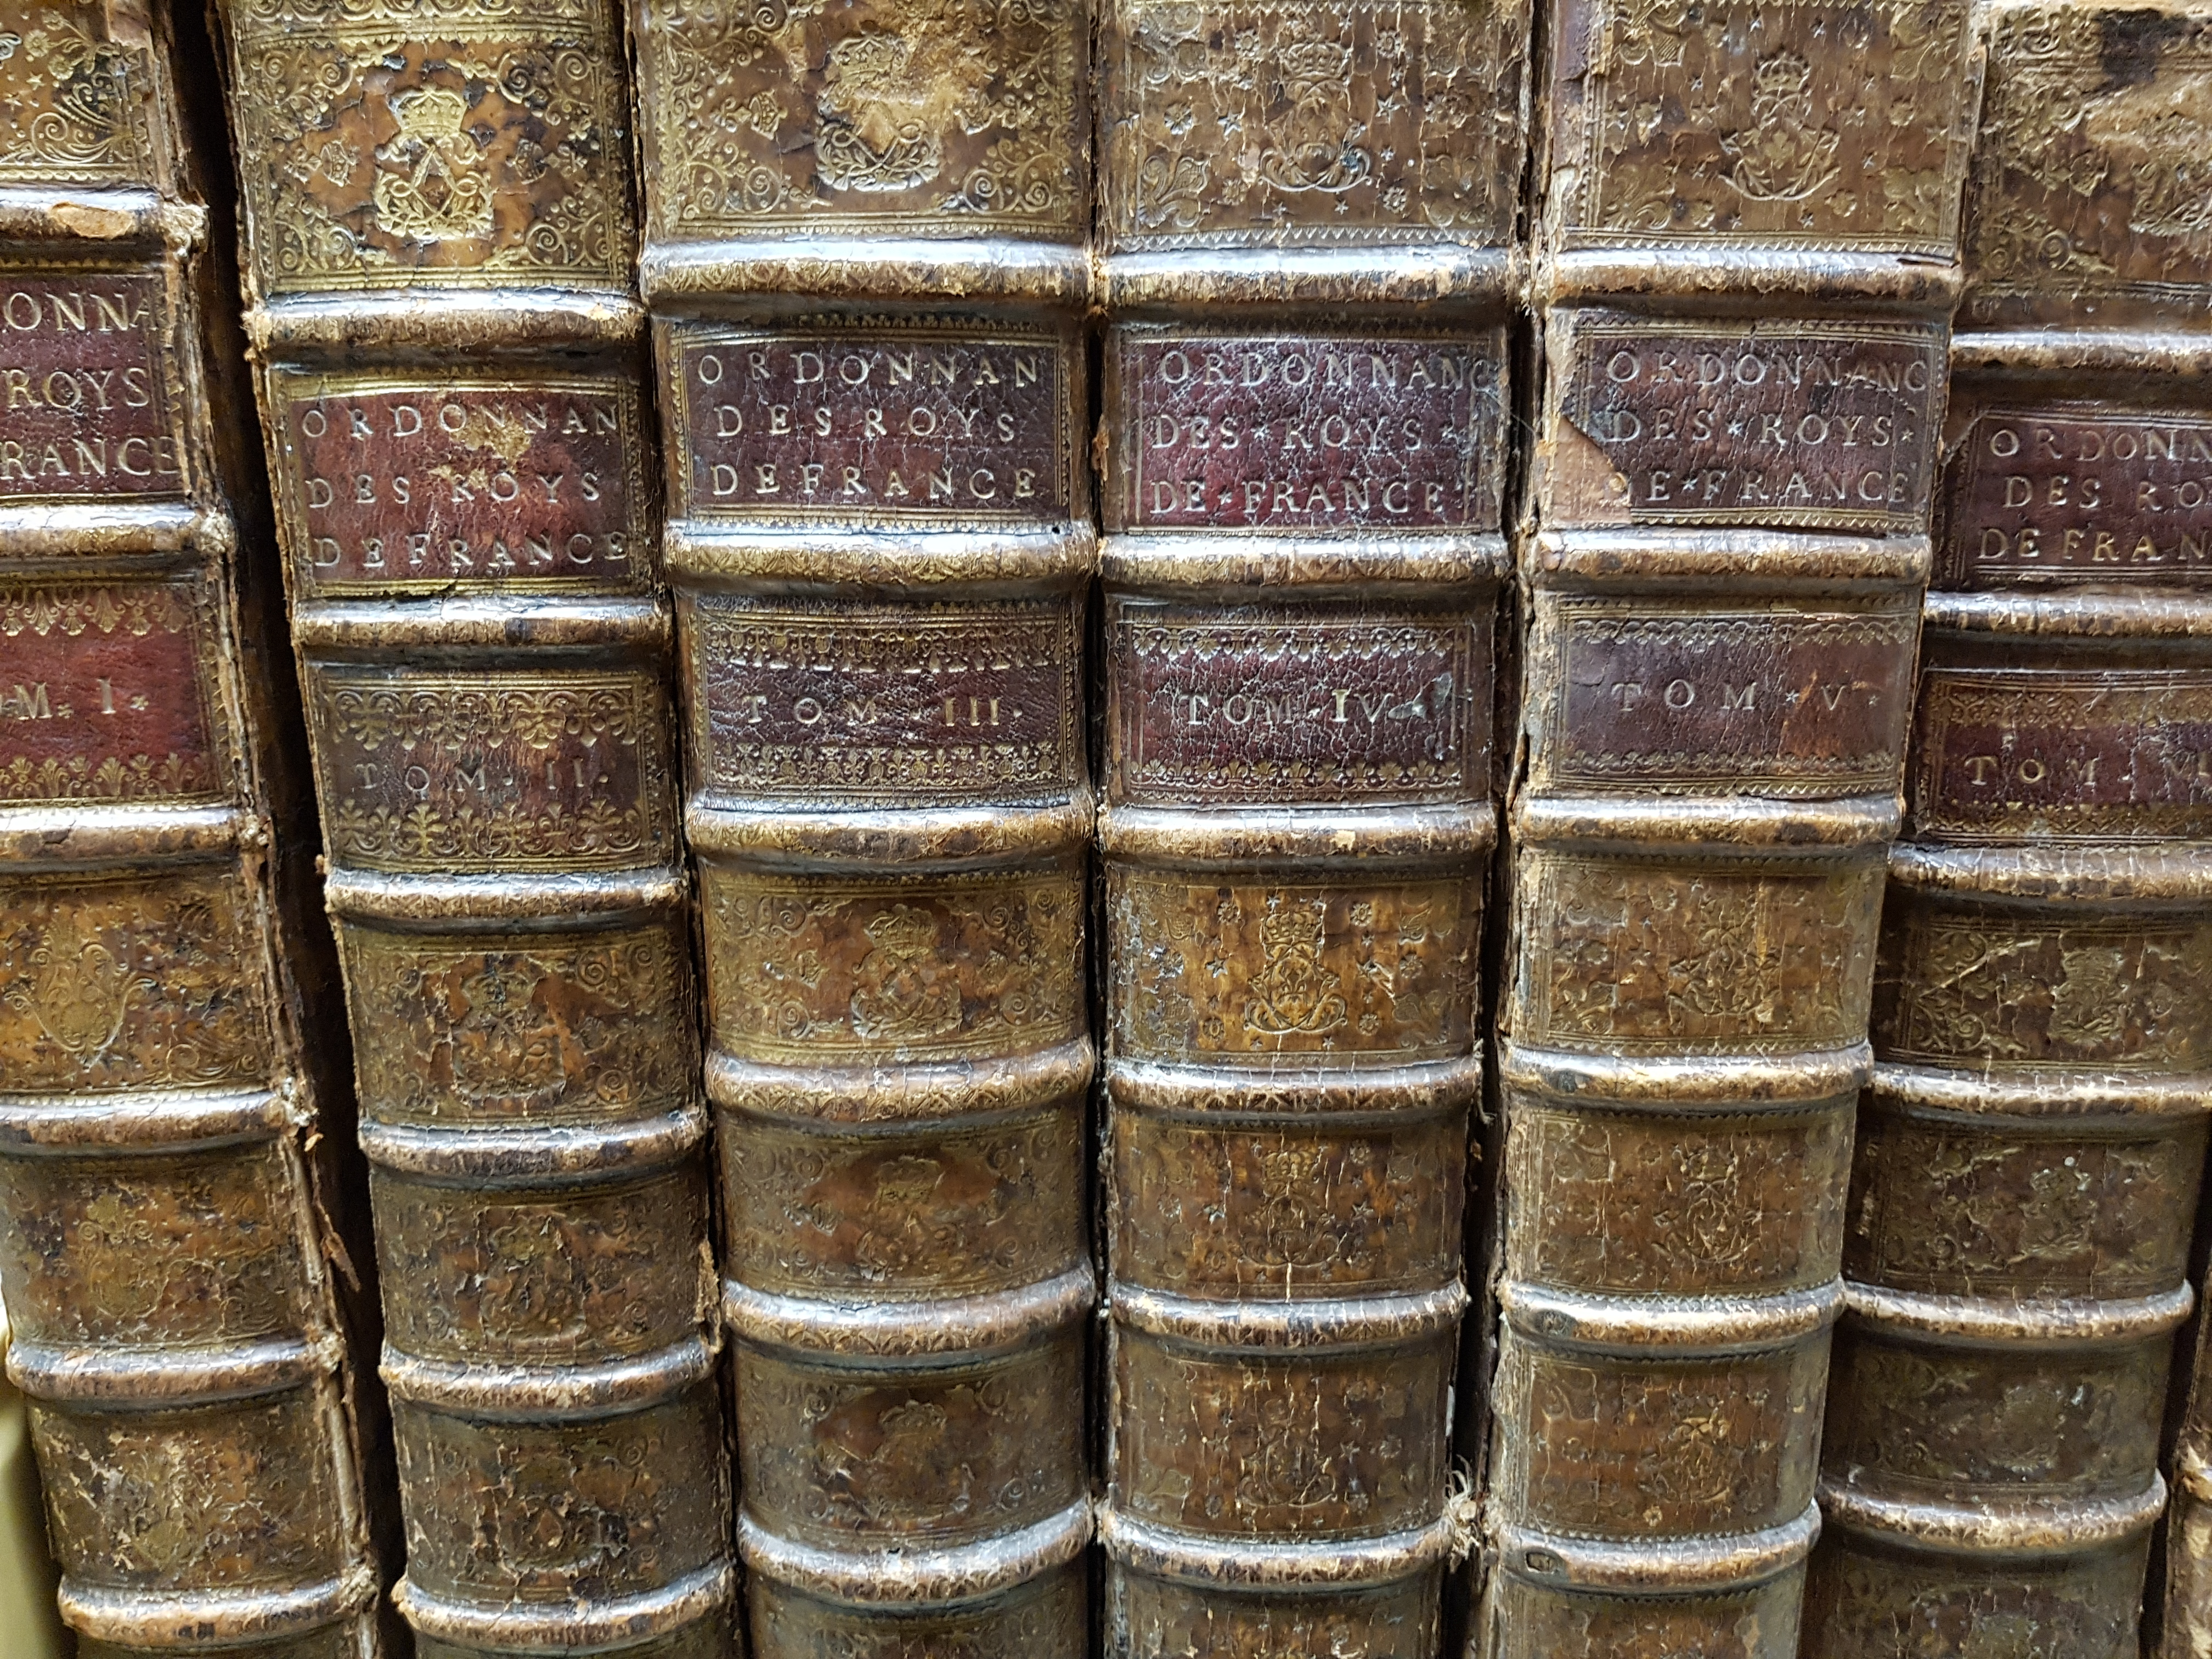 Photograph of the spines of 6 antique, leather-bound books lined up on  a shelf.